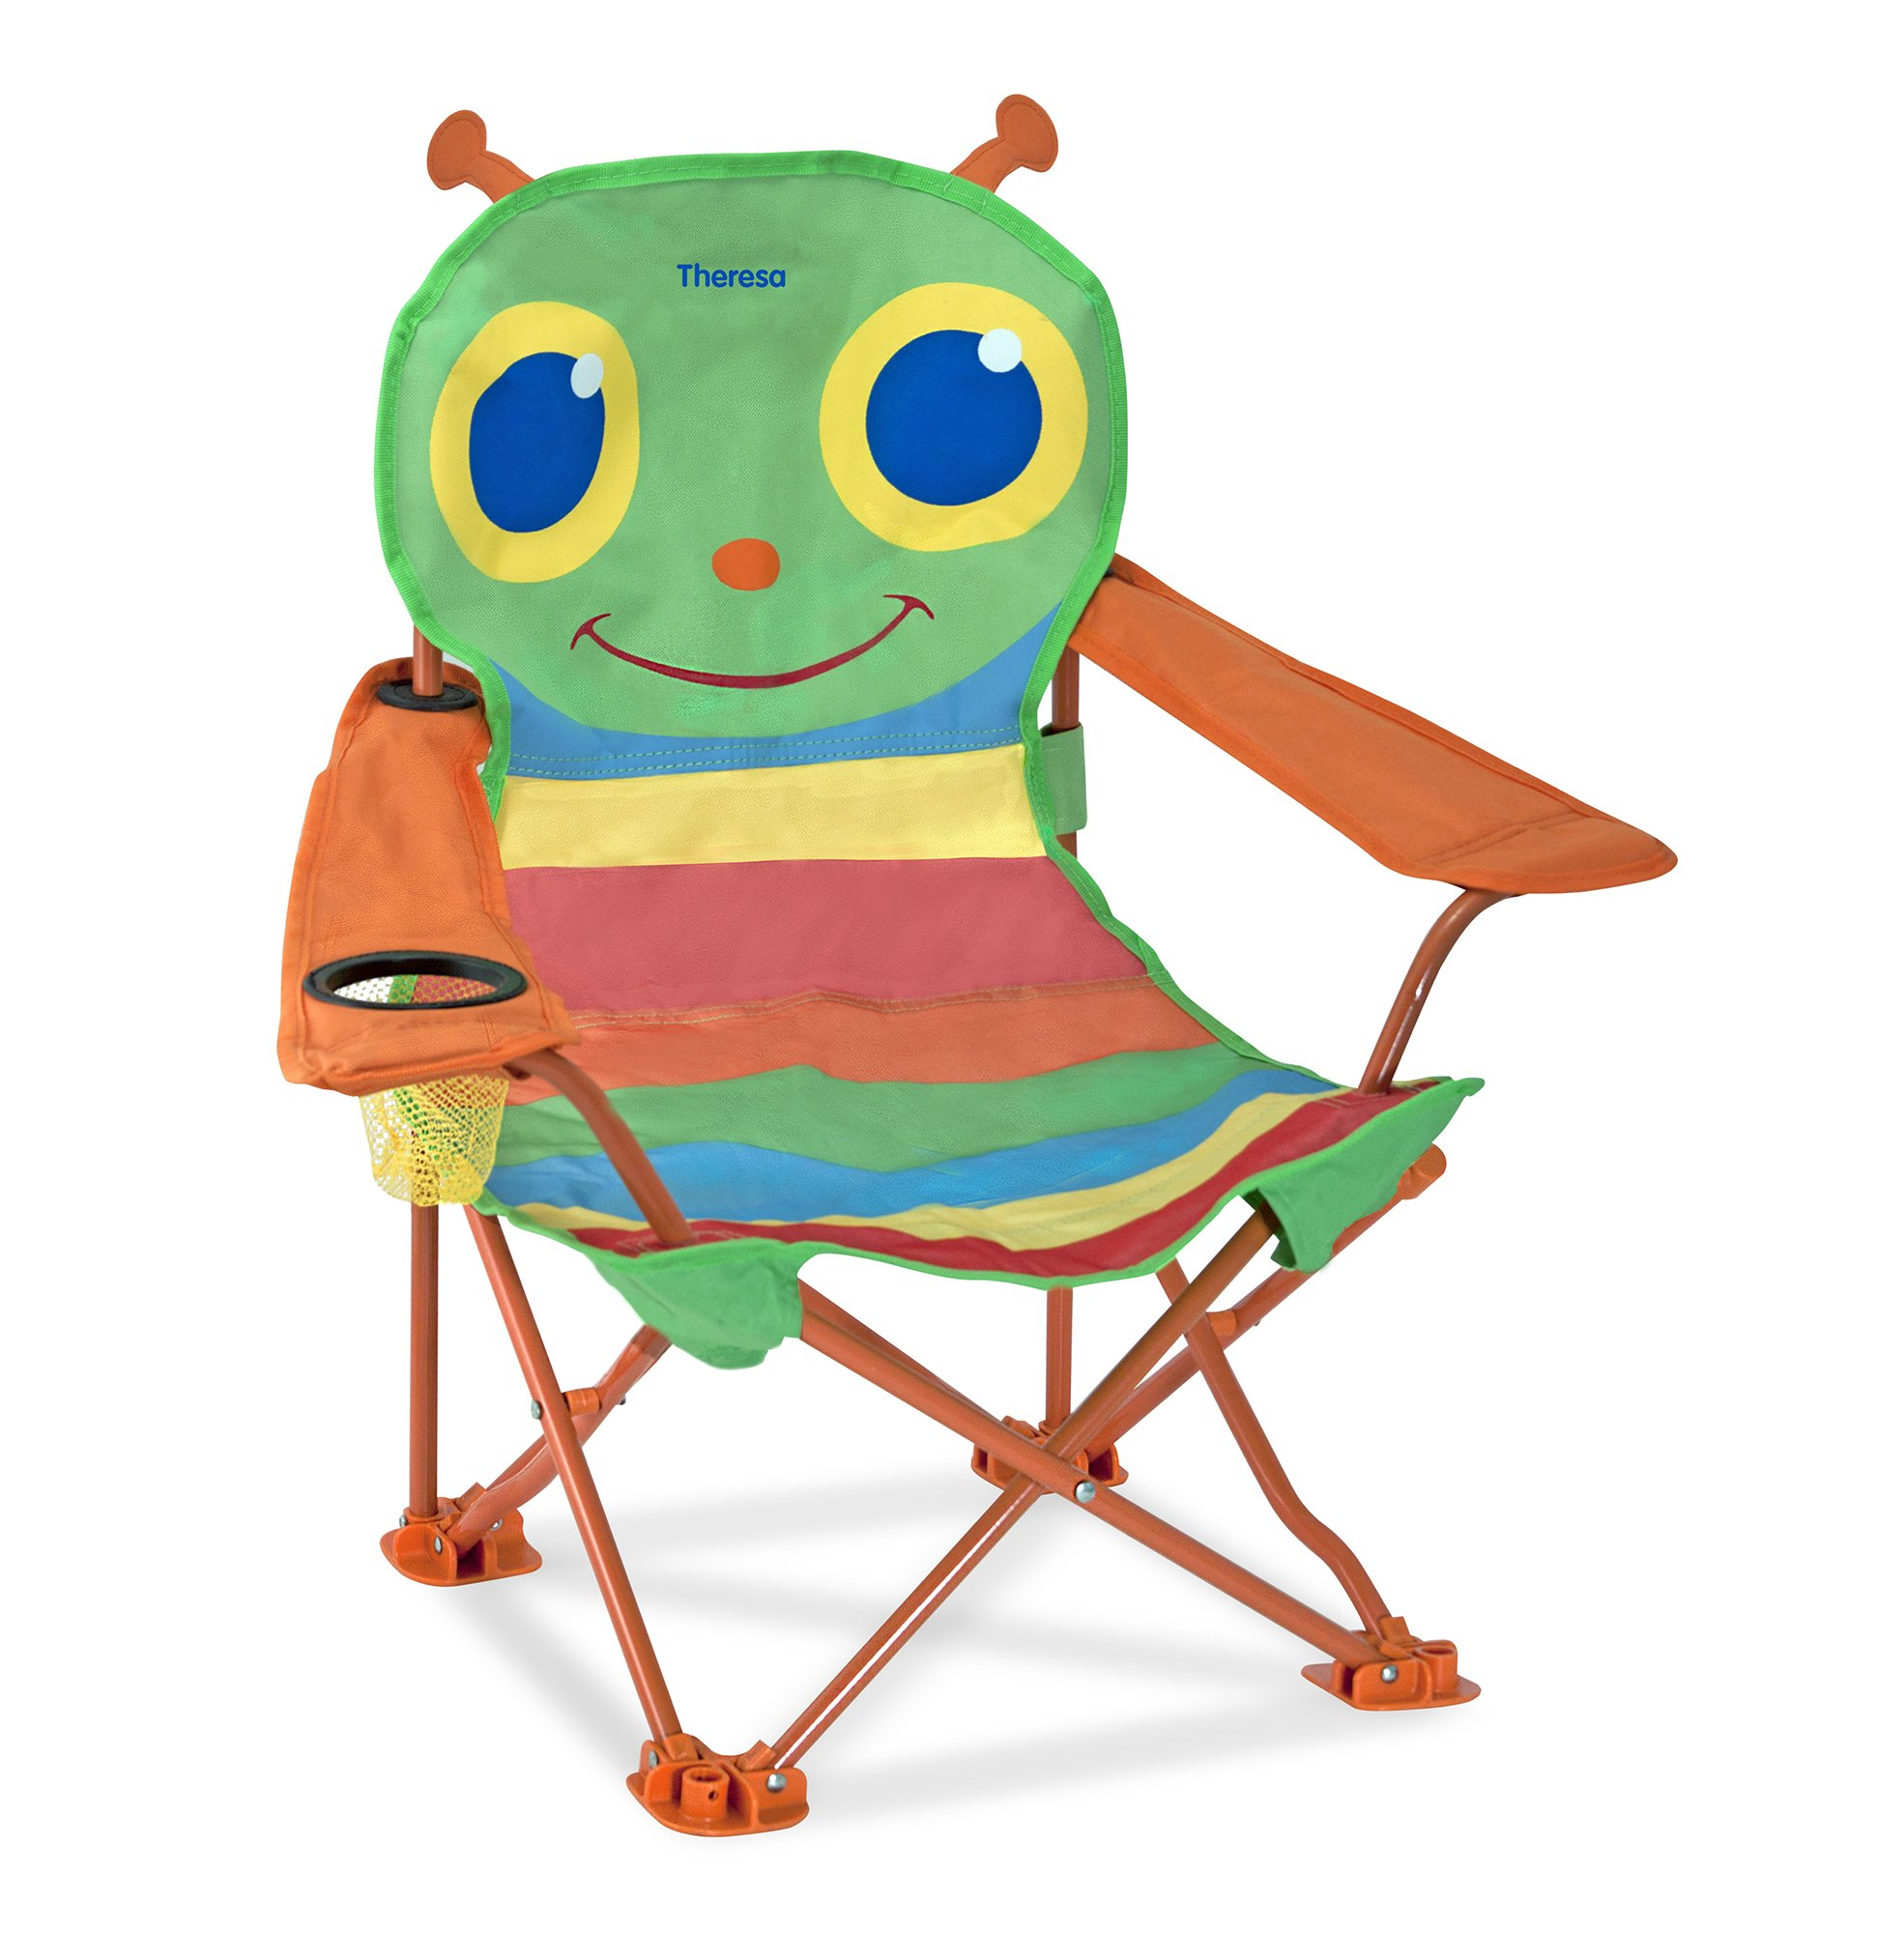 Melissa & Doug Personalized Sunny Patch Happy Giddy Outdoor Folding Lawn and Camping Chair